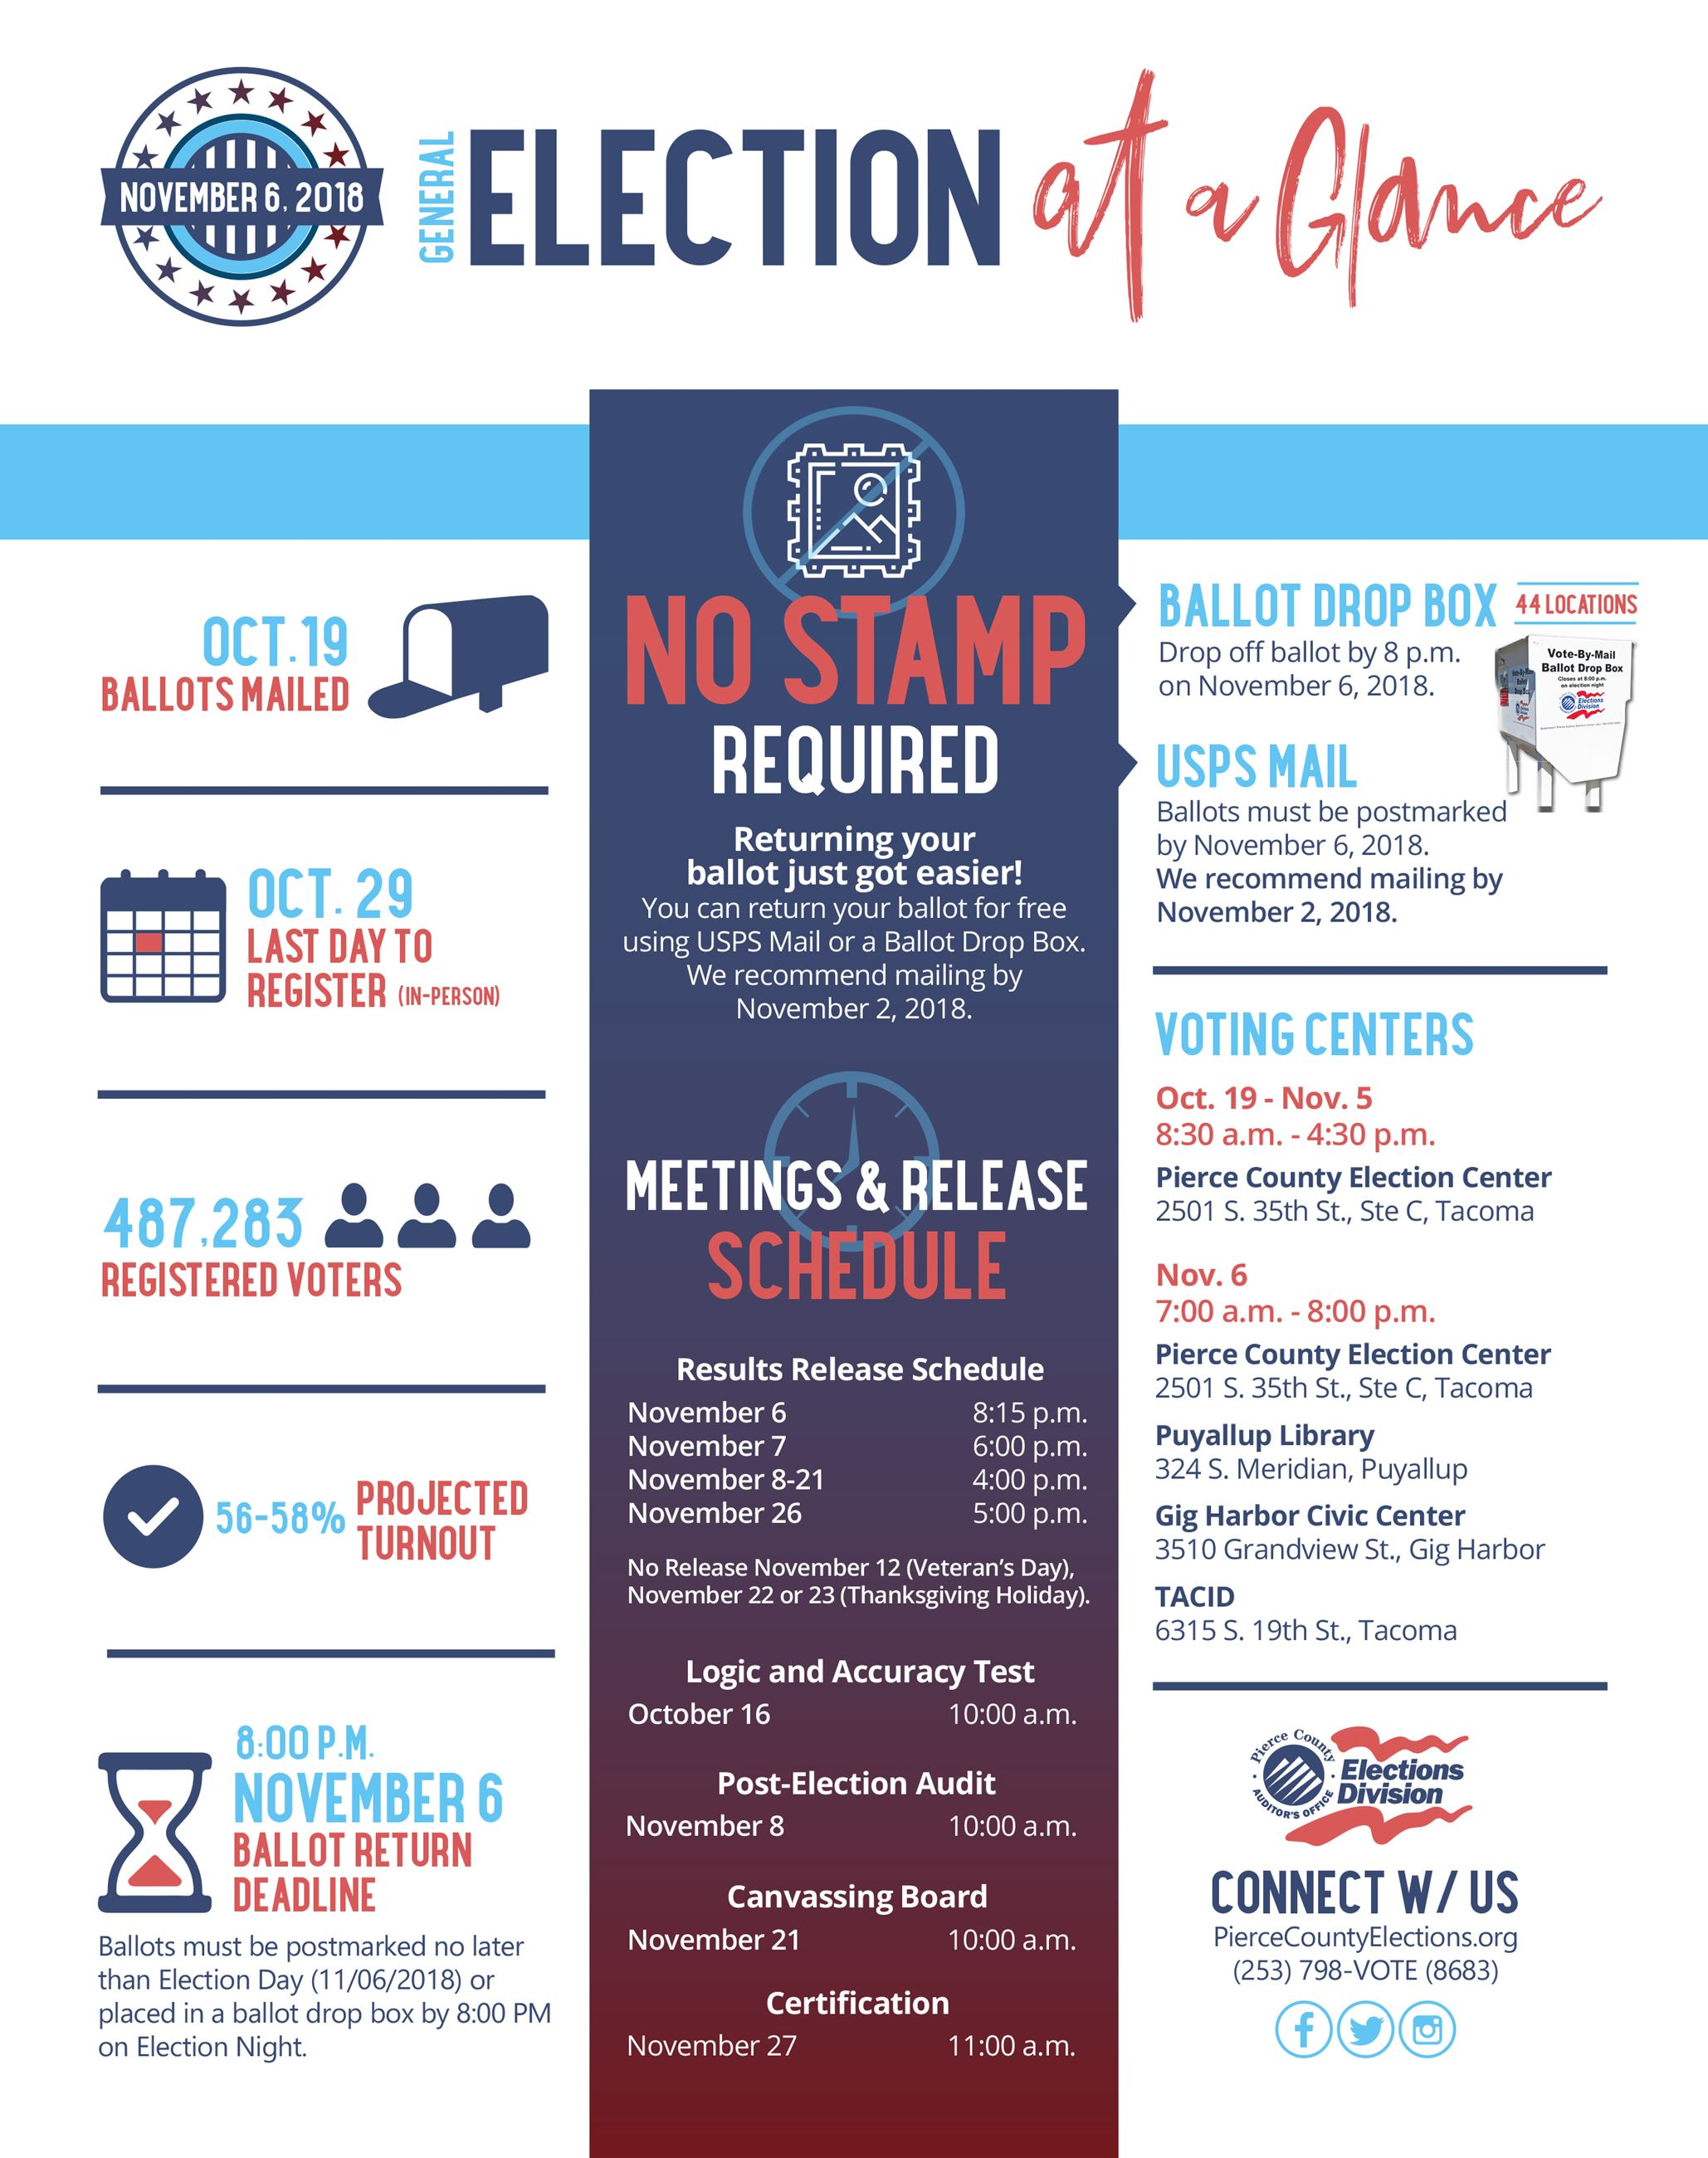 Election at a Glance